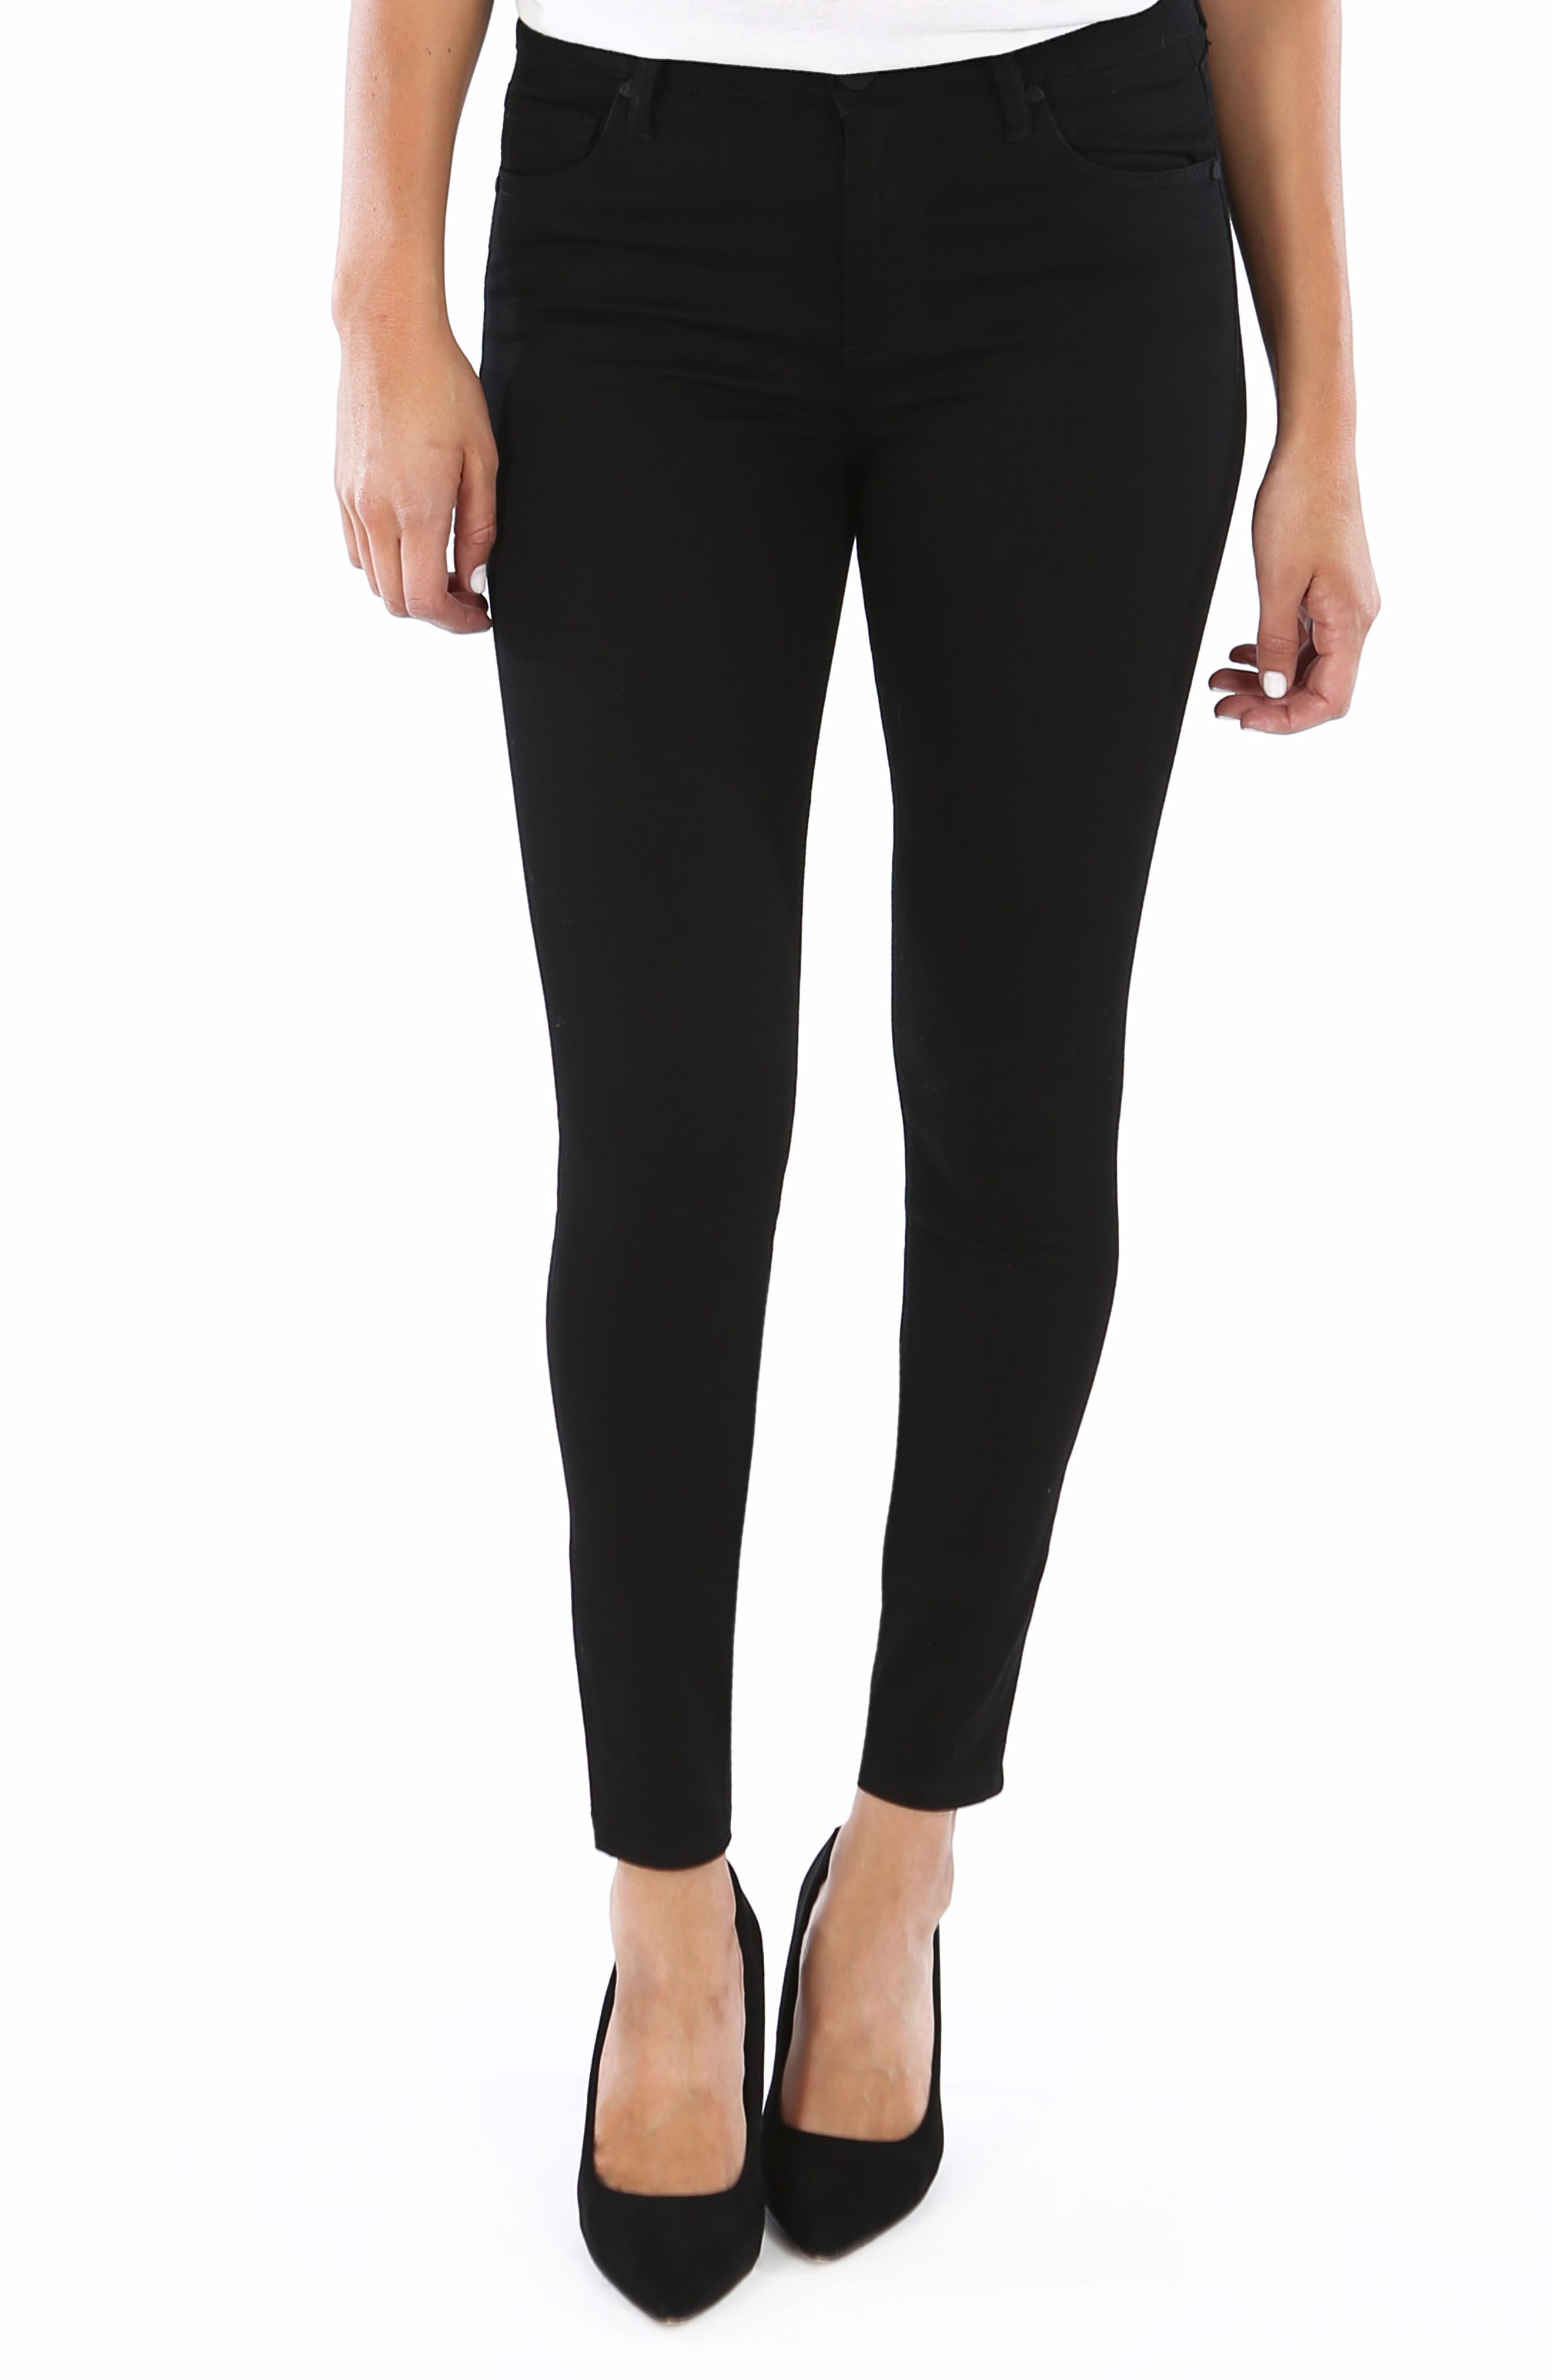 Petite Kut From The Kloth Donna High Waist Ankle Skinny Jeans, Black